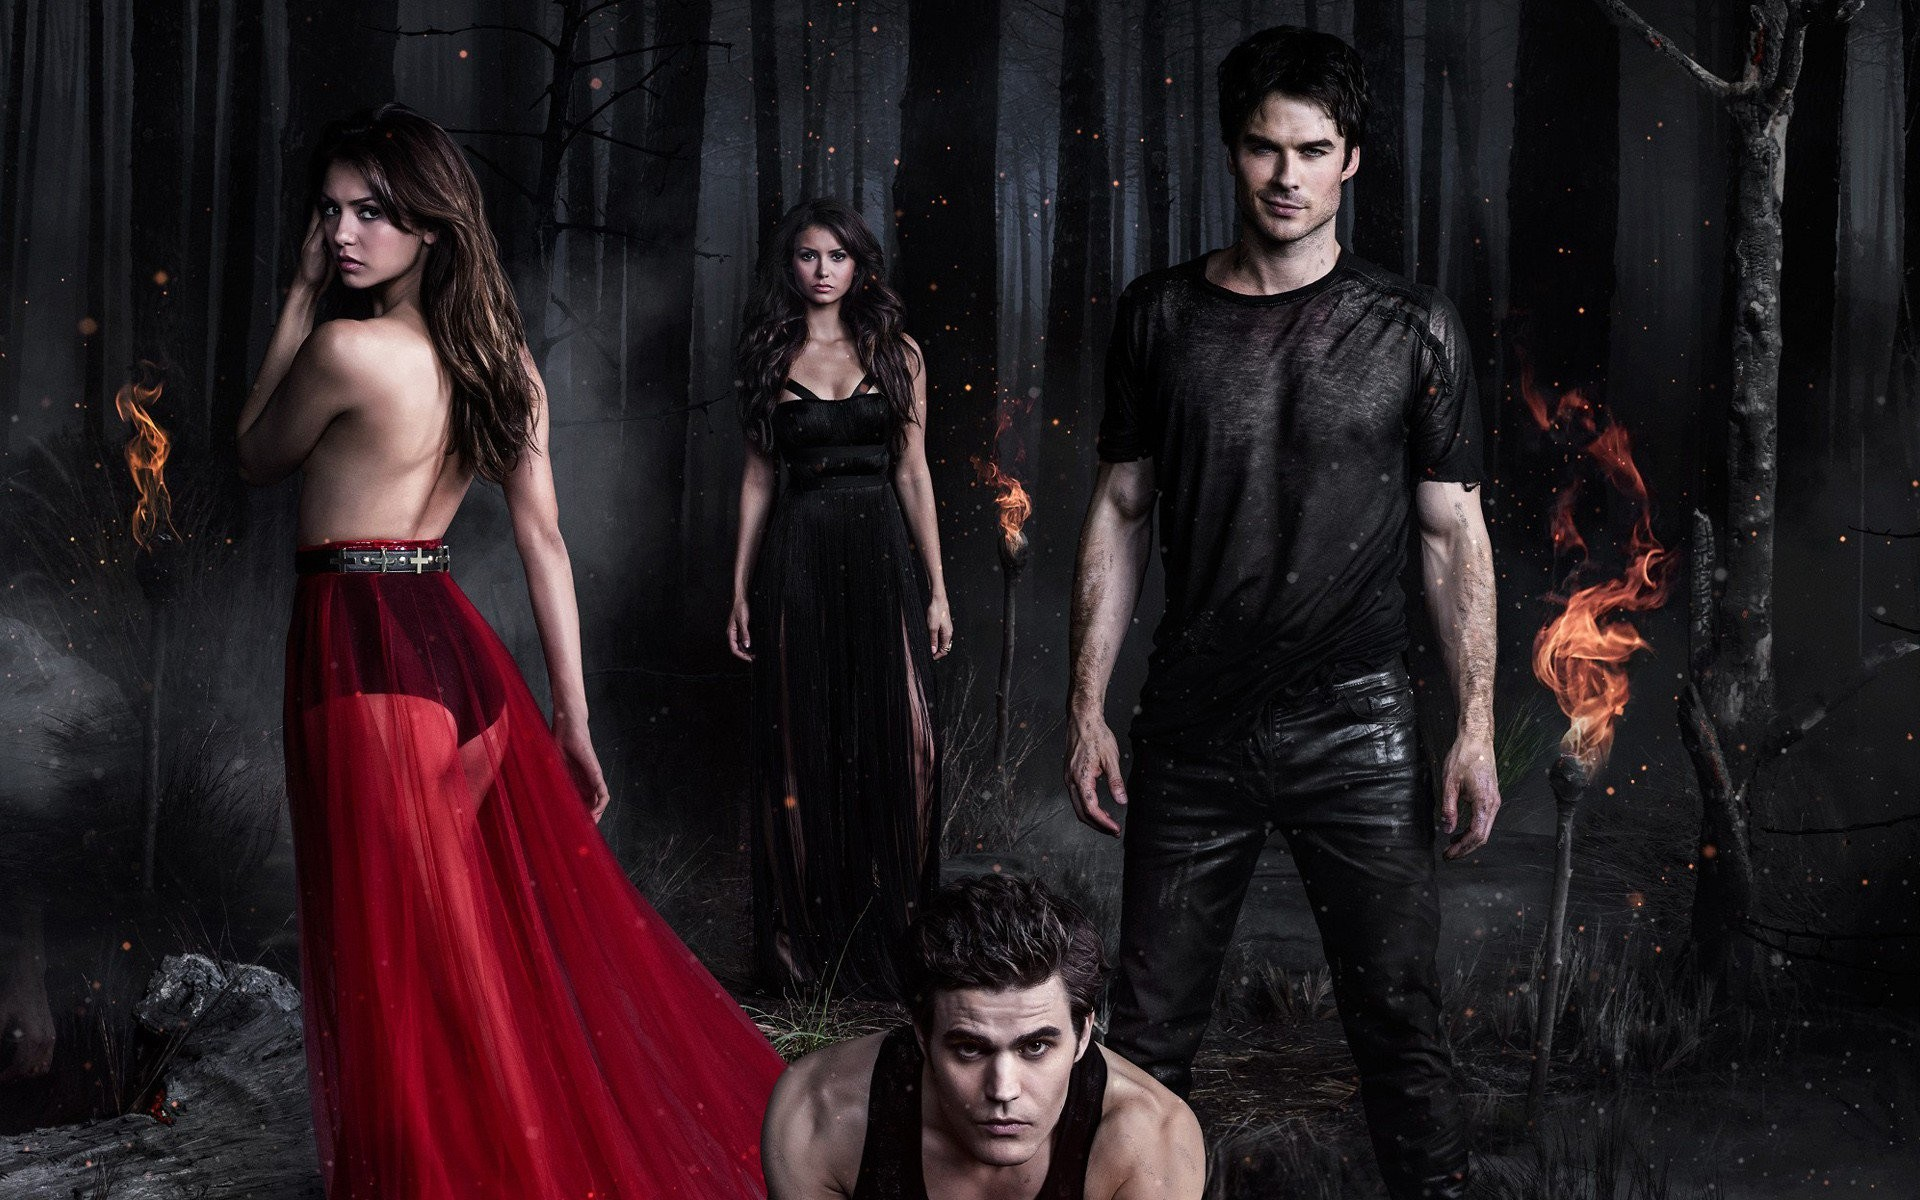 Res: 1920x1200, The Vampire Diaries Wallpapers 21 - 1920 X 1200